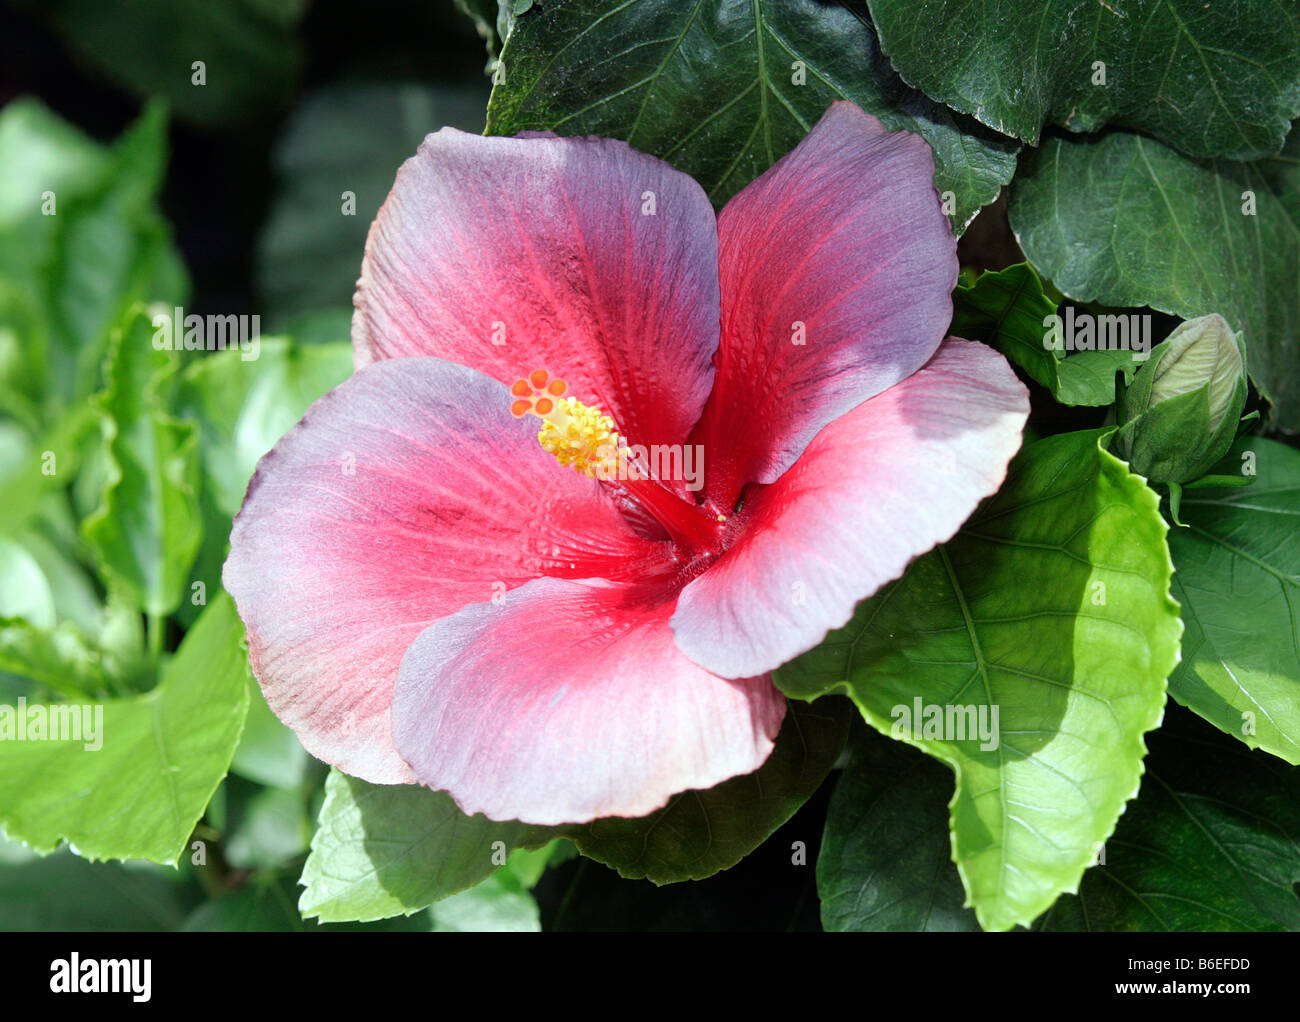 A night fire chinese hibiscus flower stock photo 21217769 alamy a night fire chinese hibiscus flower izmirmasajfo